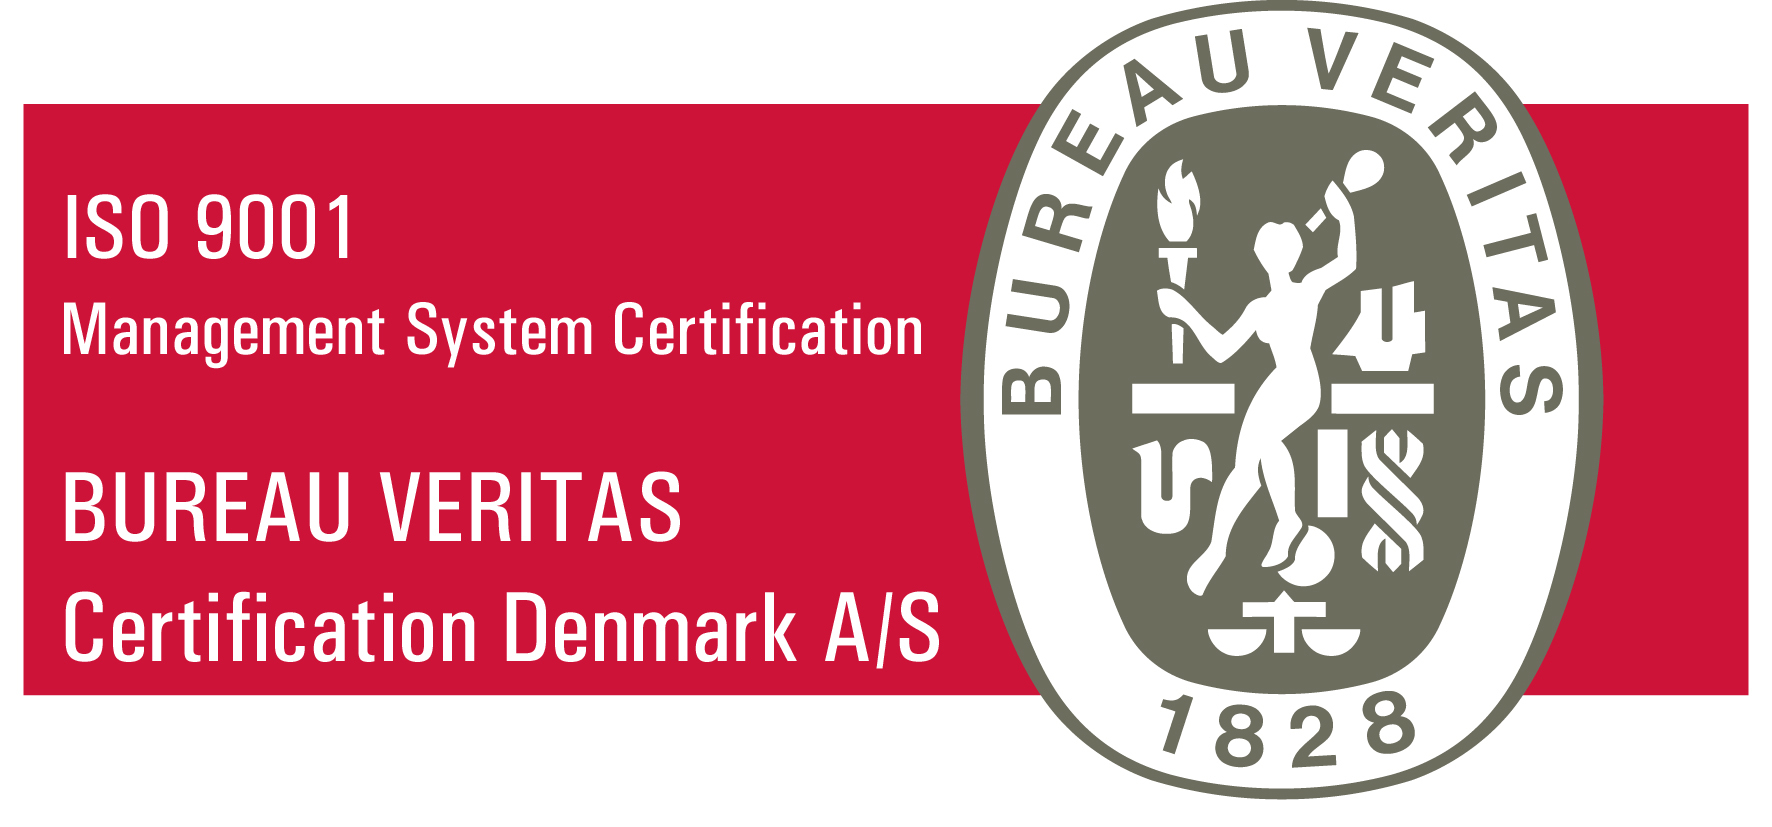 Iso 9001 Bureau Veritas Cerification